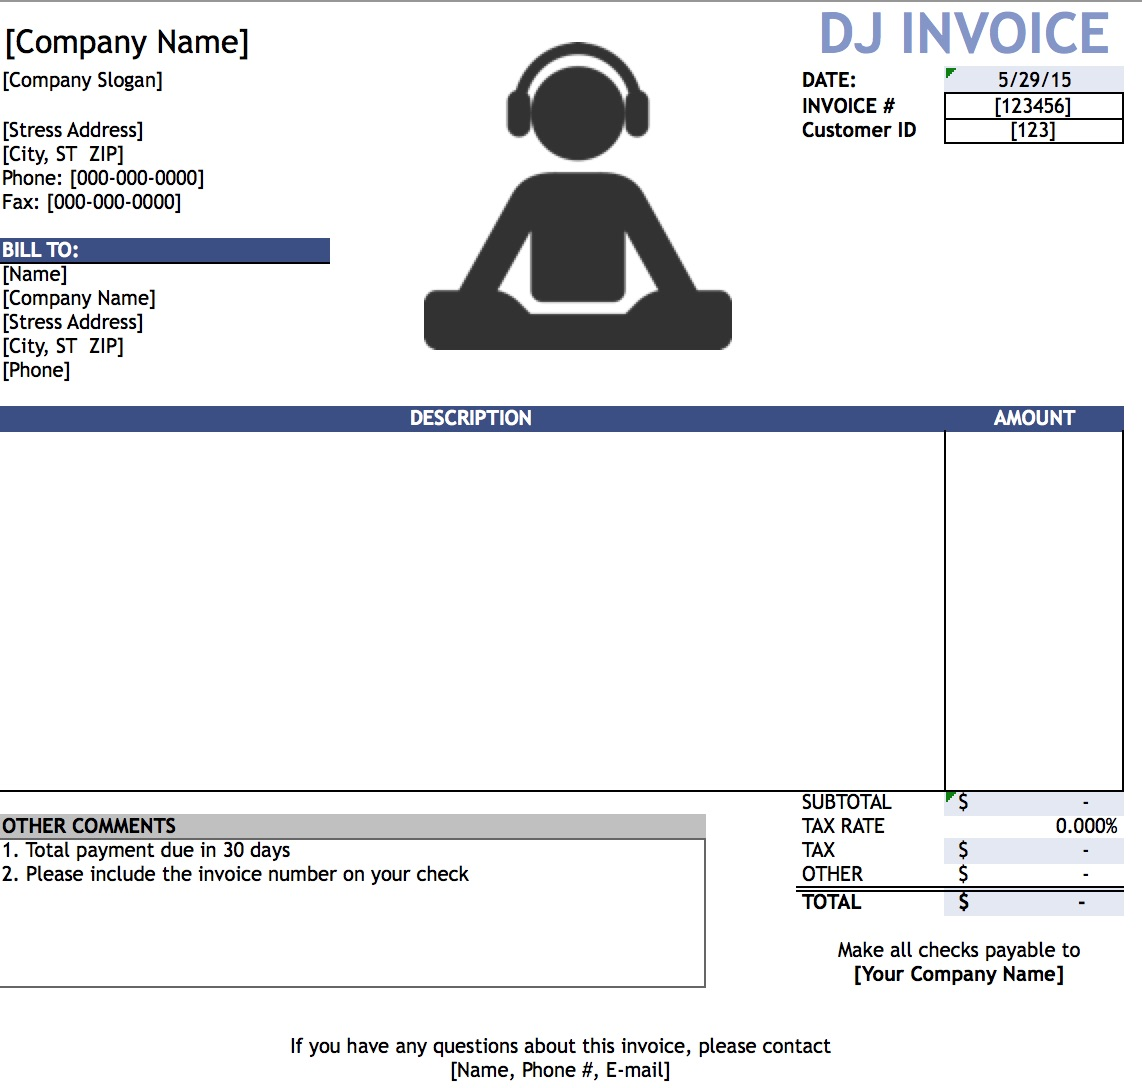 Free DJ Disc Jockey Invoice Template Excel PDF Word Doc - How to make an invoice on microsoft word for service business